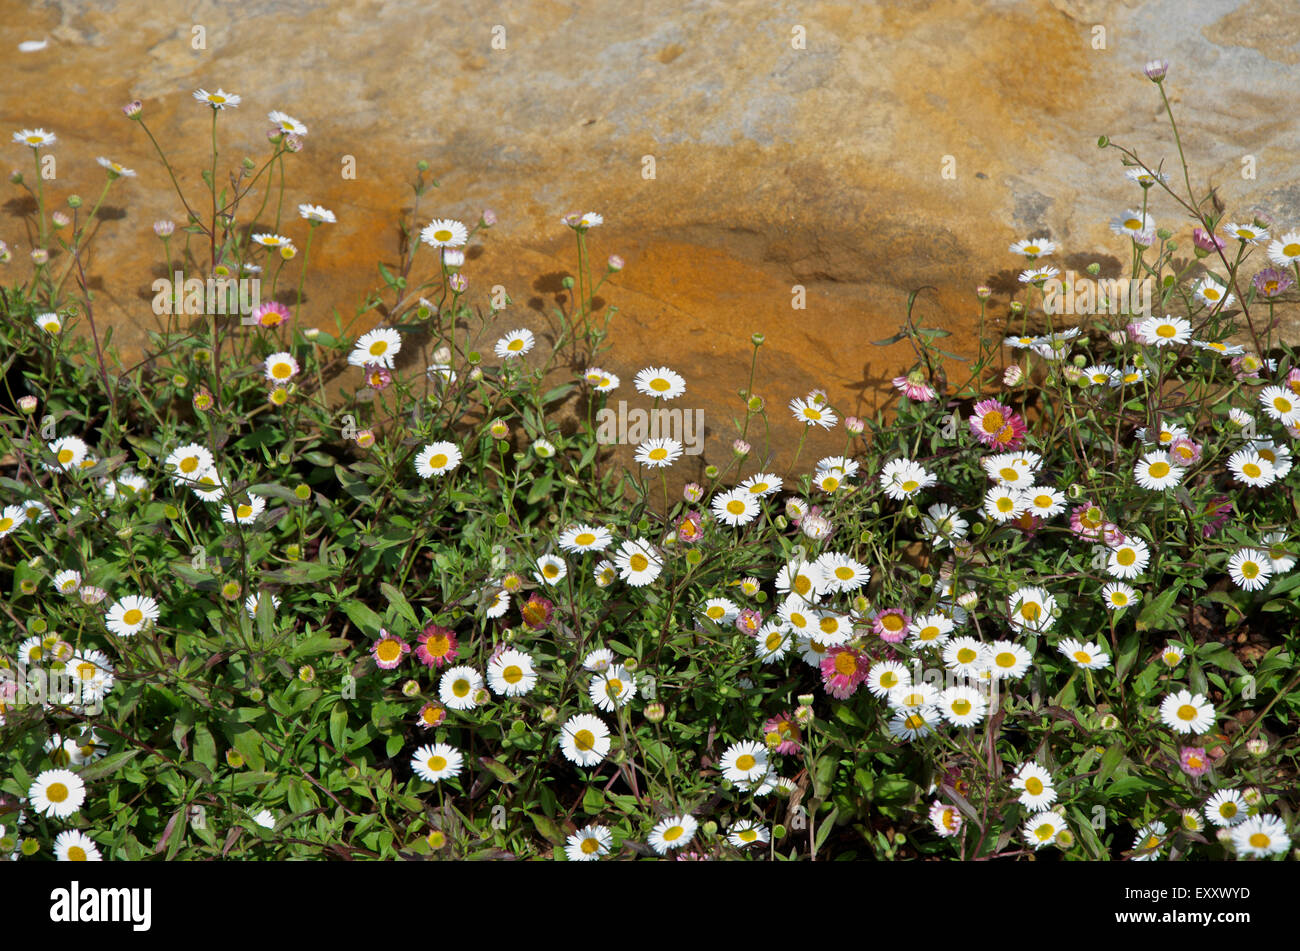 the small daisy like flowers of mexican fleabane or erigeron stock, Beautiful flower